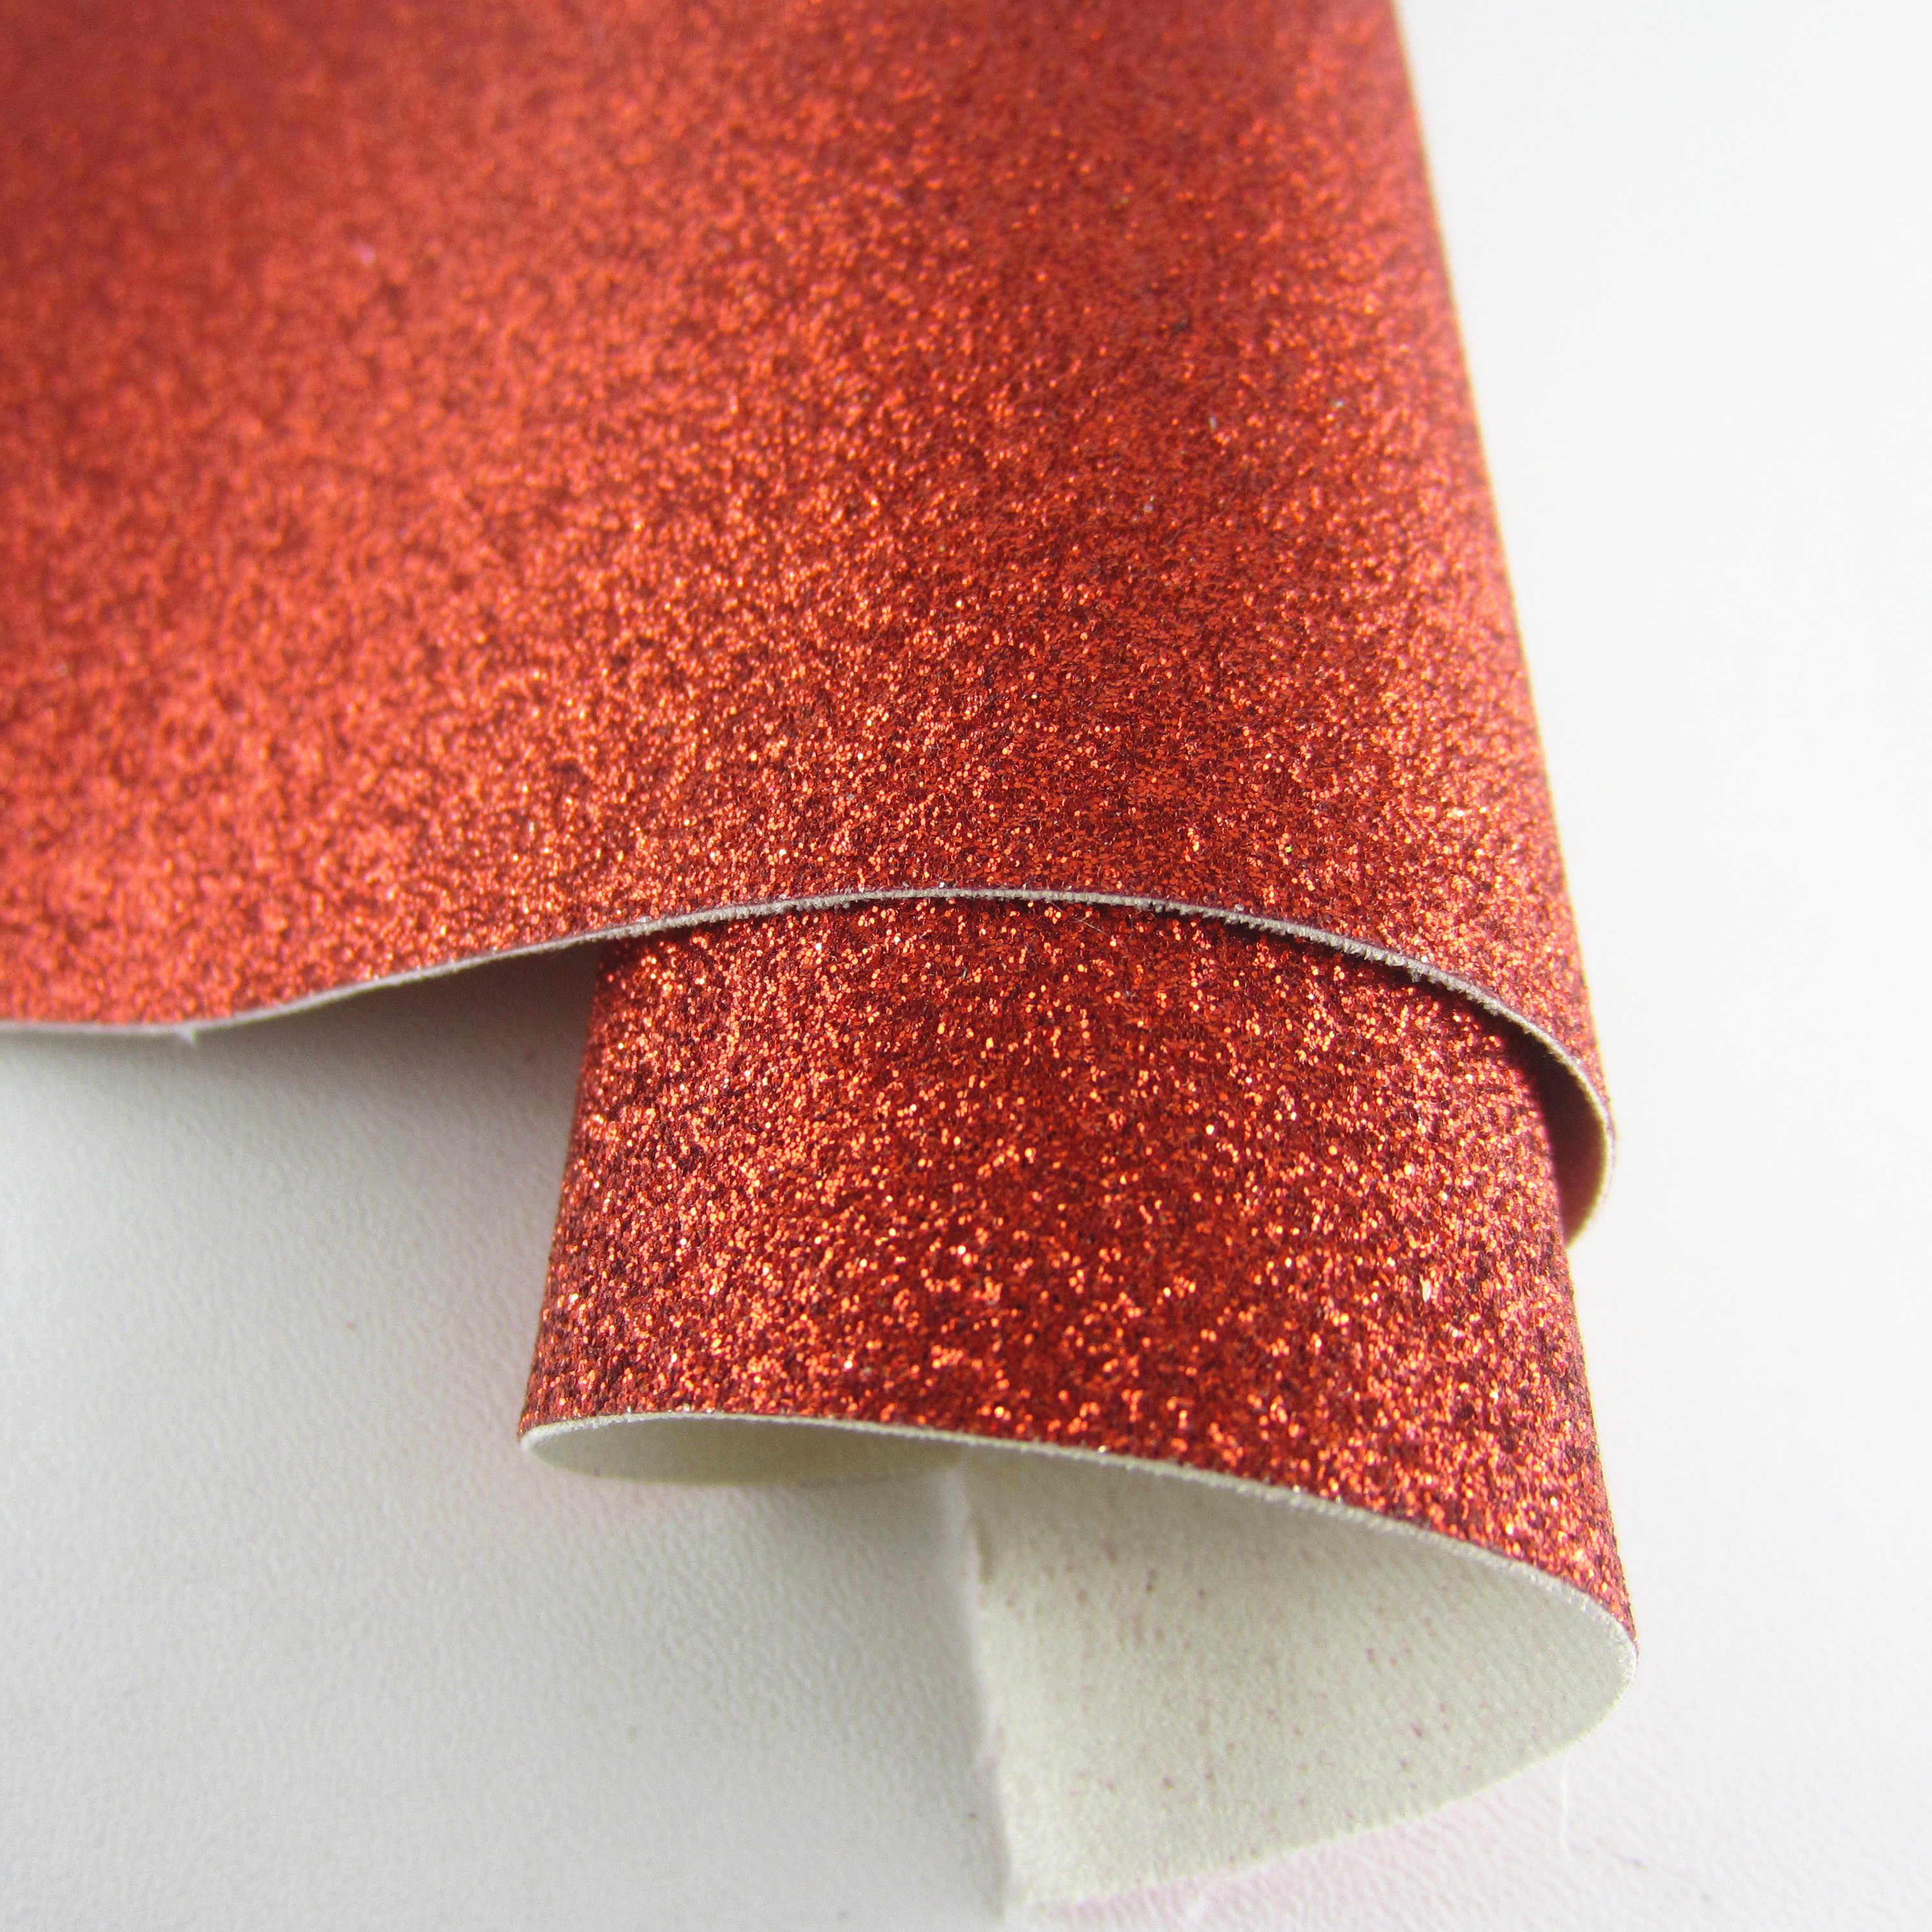 21cmx30cm 10 Pieces//Set 8x12 Inch A4 Bundle Leather Sheets Black White Red Mixed Series Sparkle Fine Chunky Glitter Litchi Texture Printed Faux Leather Fabric Bow Earrings Making DIY Craft